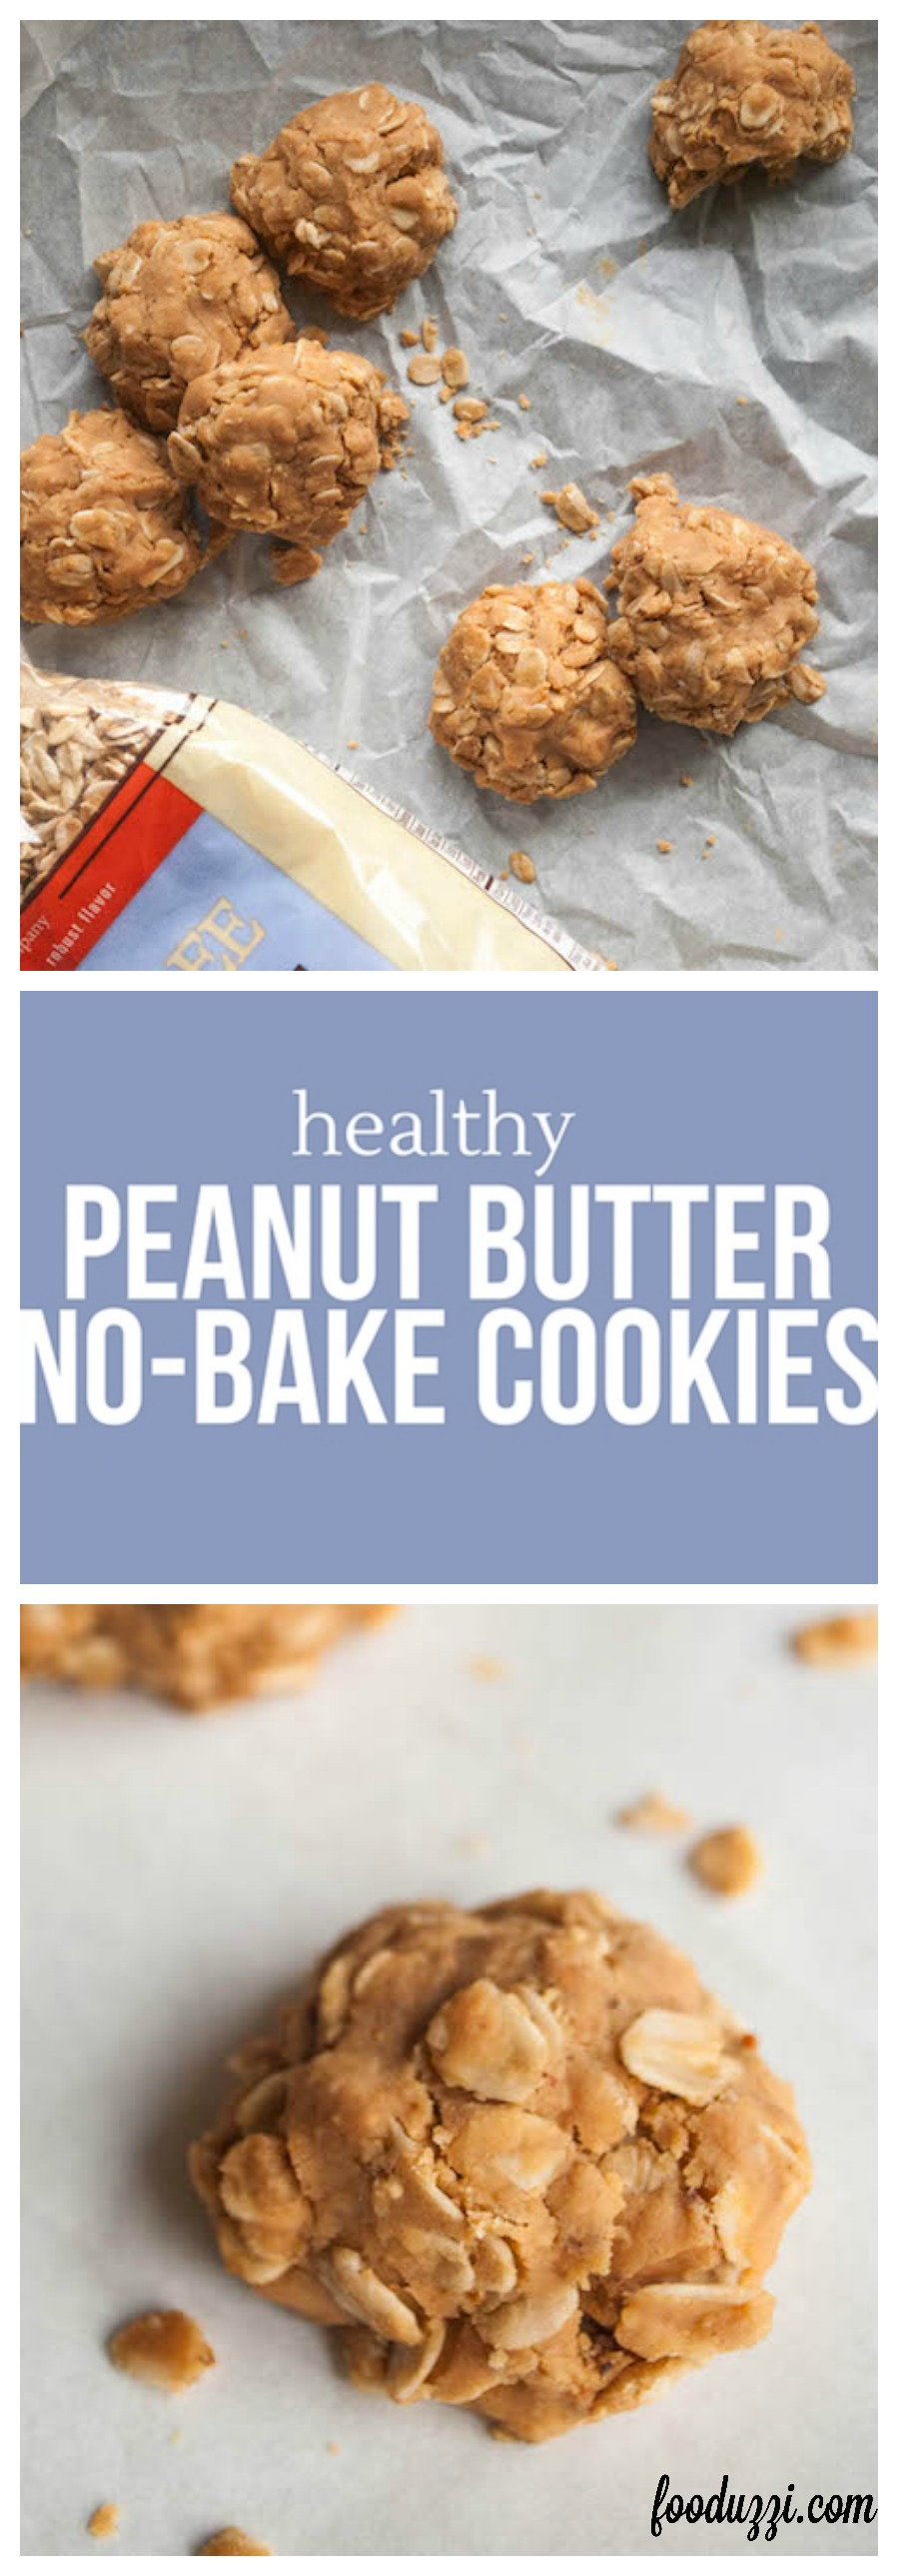 Healthy Peanut Butter No Bake Cookies Fooduzzi